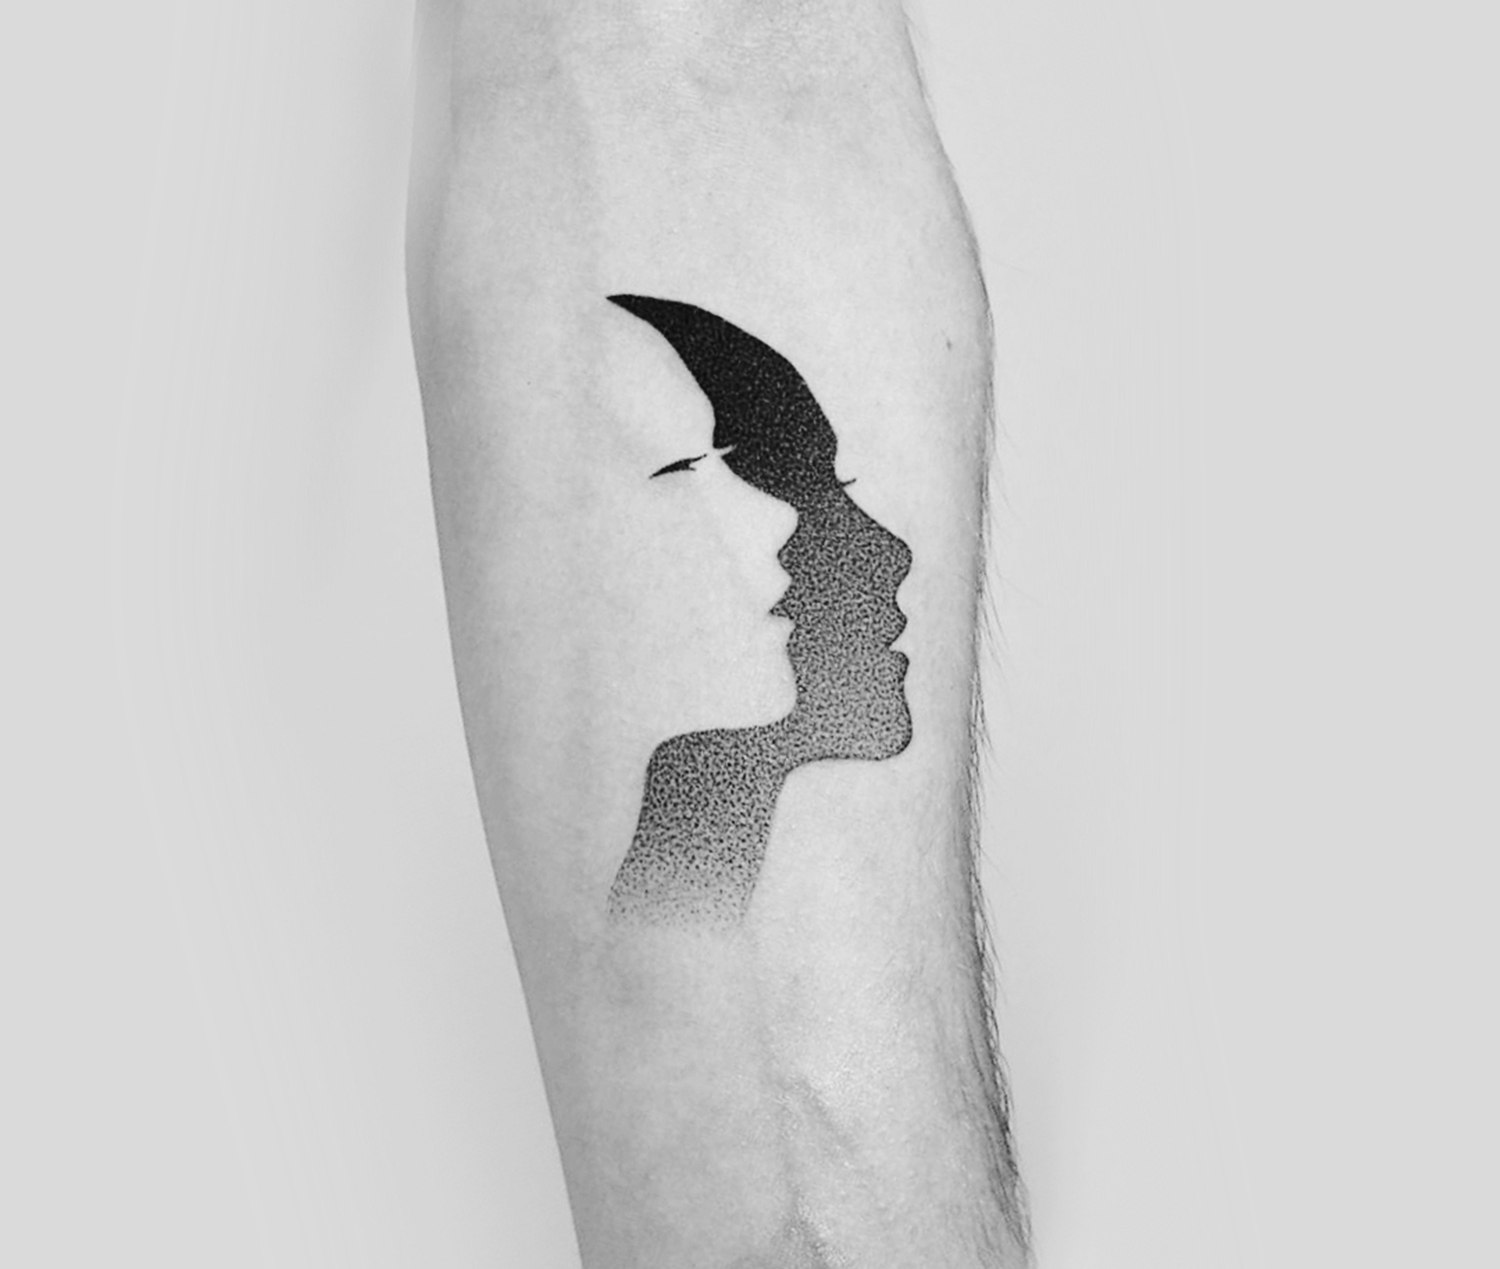 double face, negative space tattoo by Dotyk